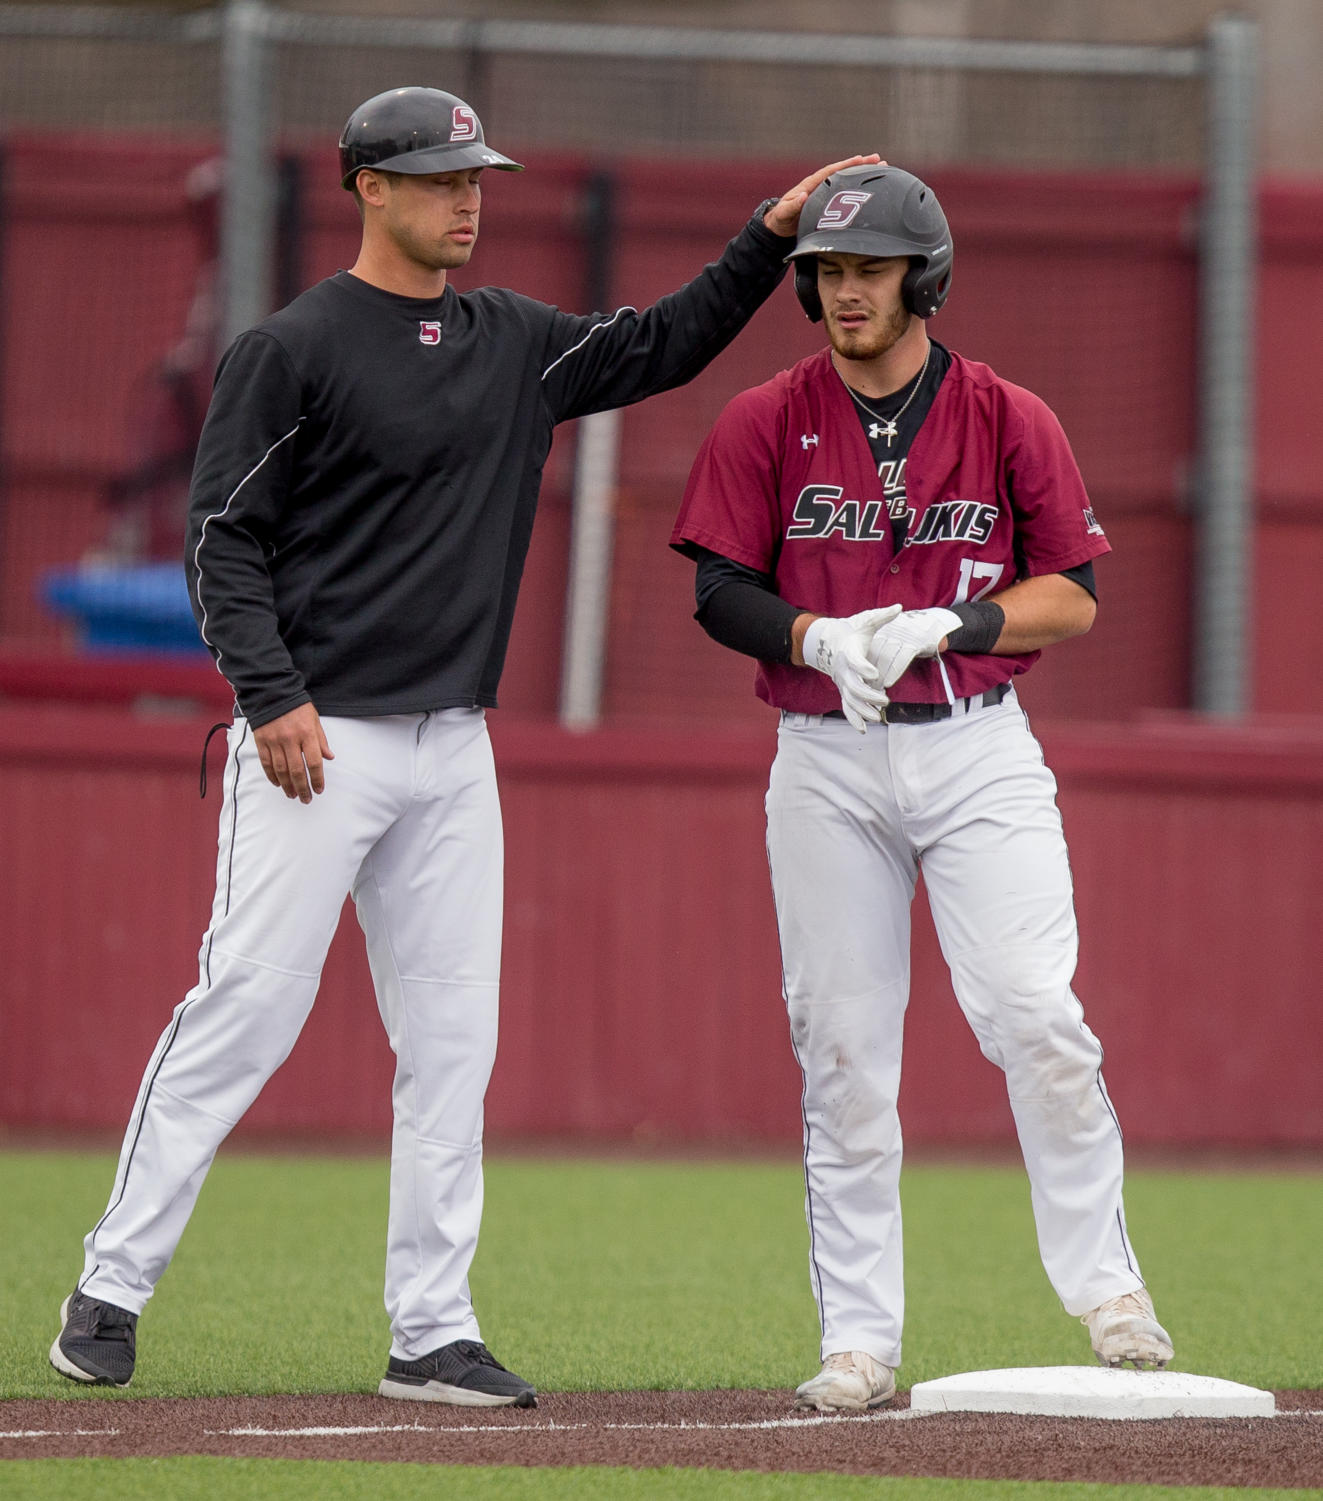 Southern+Illinois+sophomore+catcher+Austin+Ulick+%2817%29+is+congratulated+after+making+a+run+to+third+Friday%2C+March+23%2C+2018%2C+during+the+University+of+California-Irvine+Anteaters%27+6-2+victory+against+the+Southern+Illinois+Salukis+at+Itchy+Jones+Stadium.+%28Brian+Munoz+%7C+%40BrianMMunoz%29